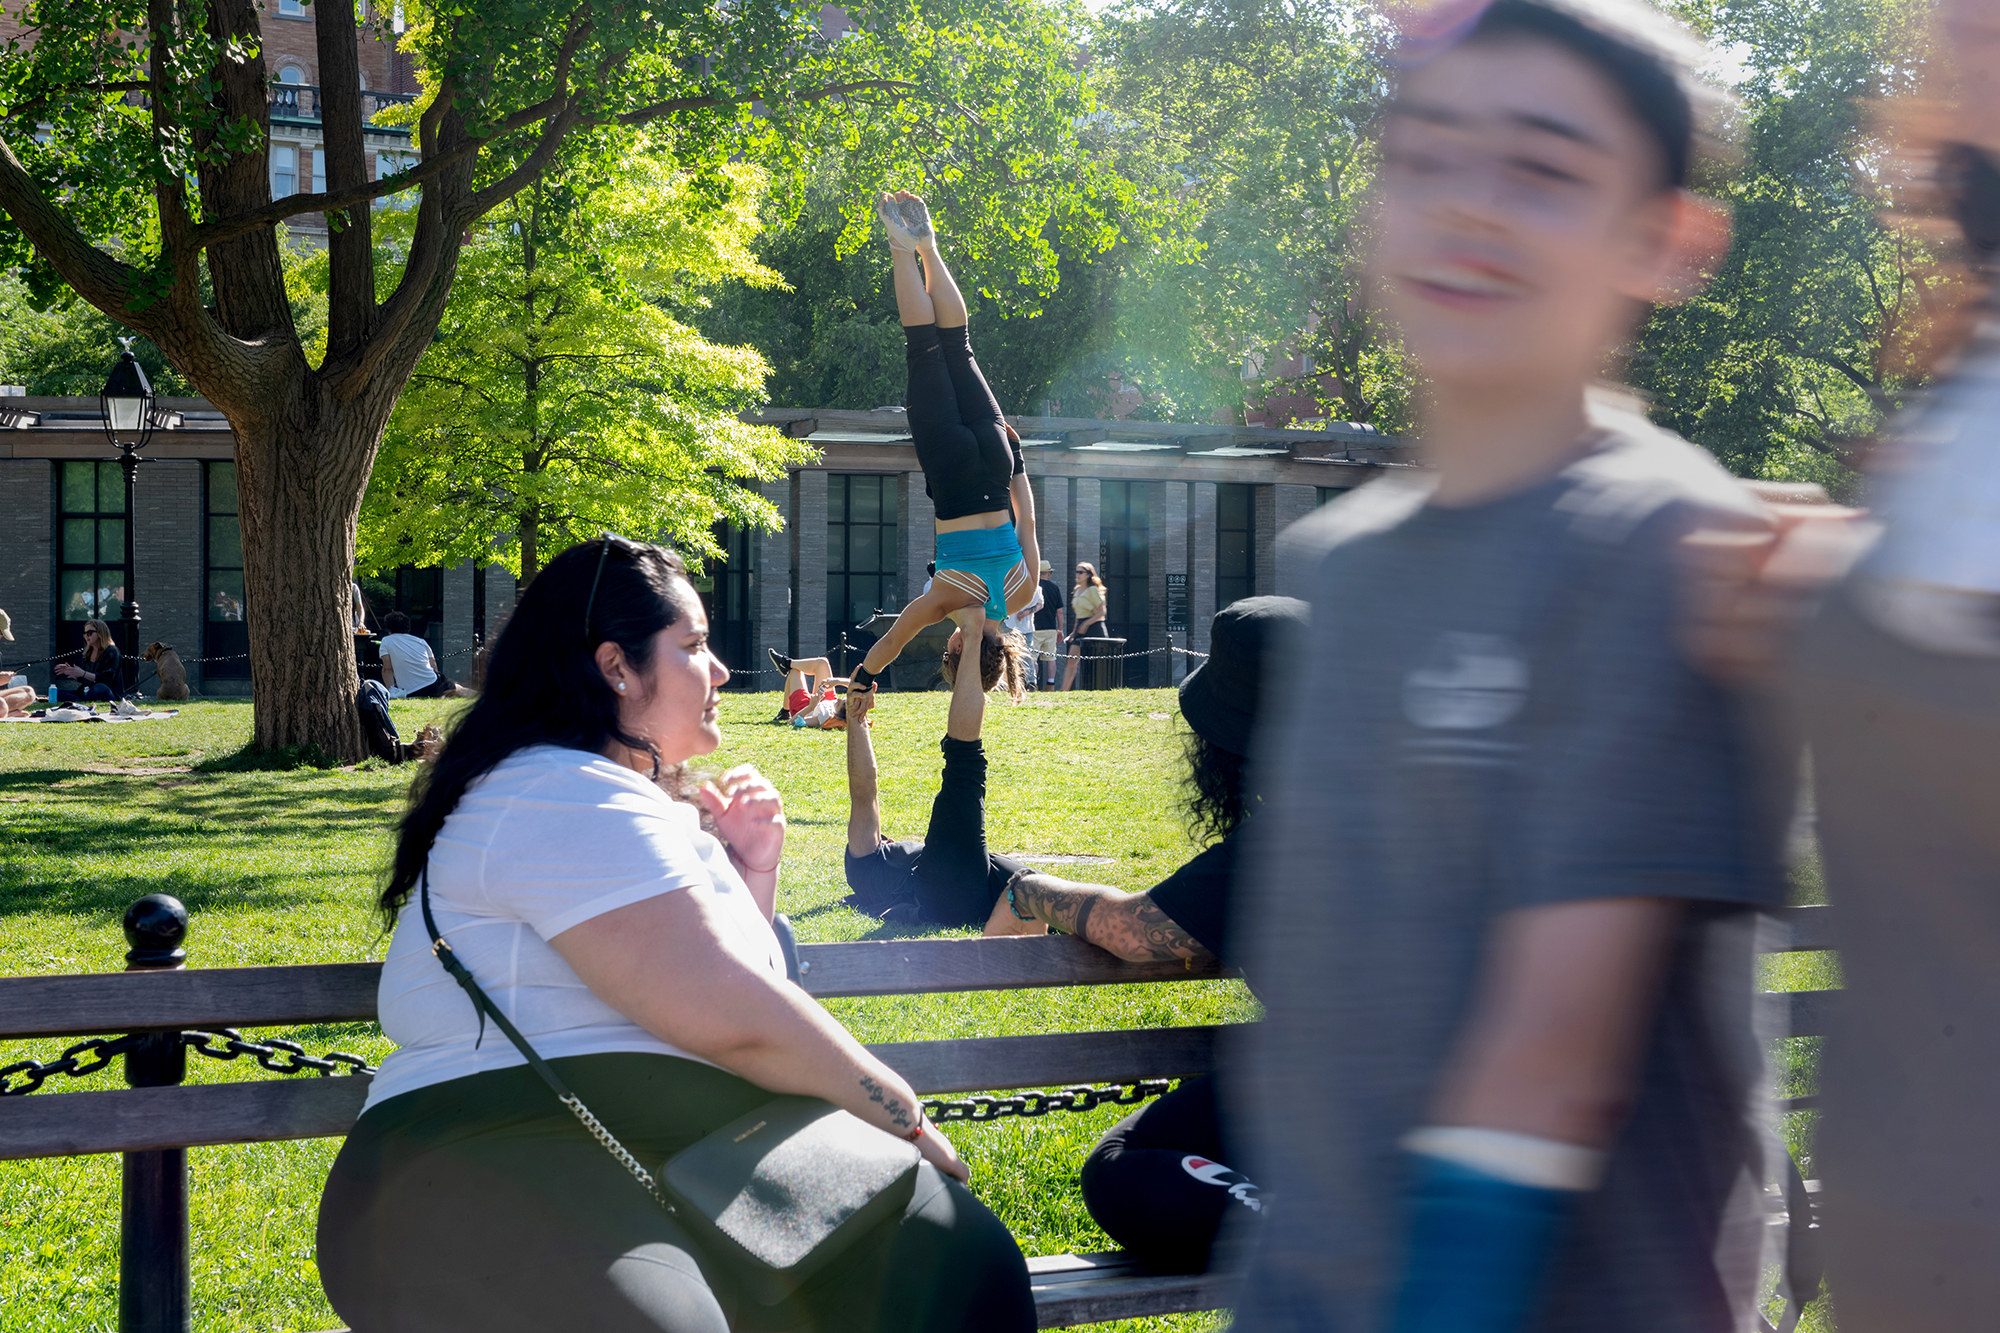 A woman on a bench with her friend watch a couple do acro-yoga, and a boy walks through the forefront of the camera